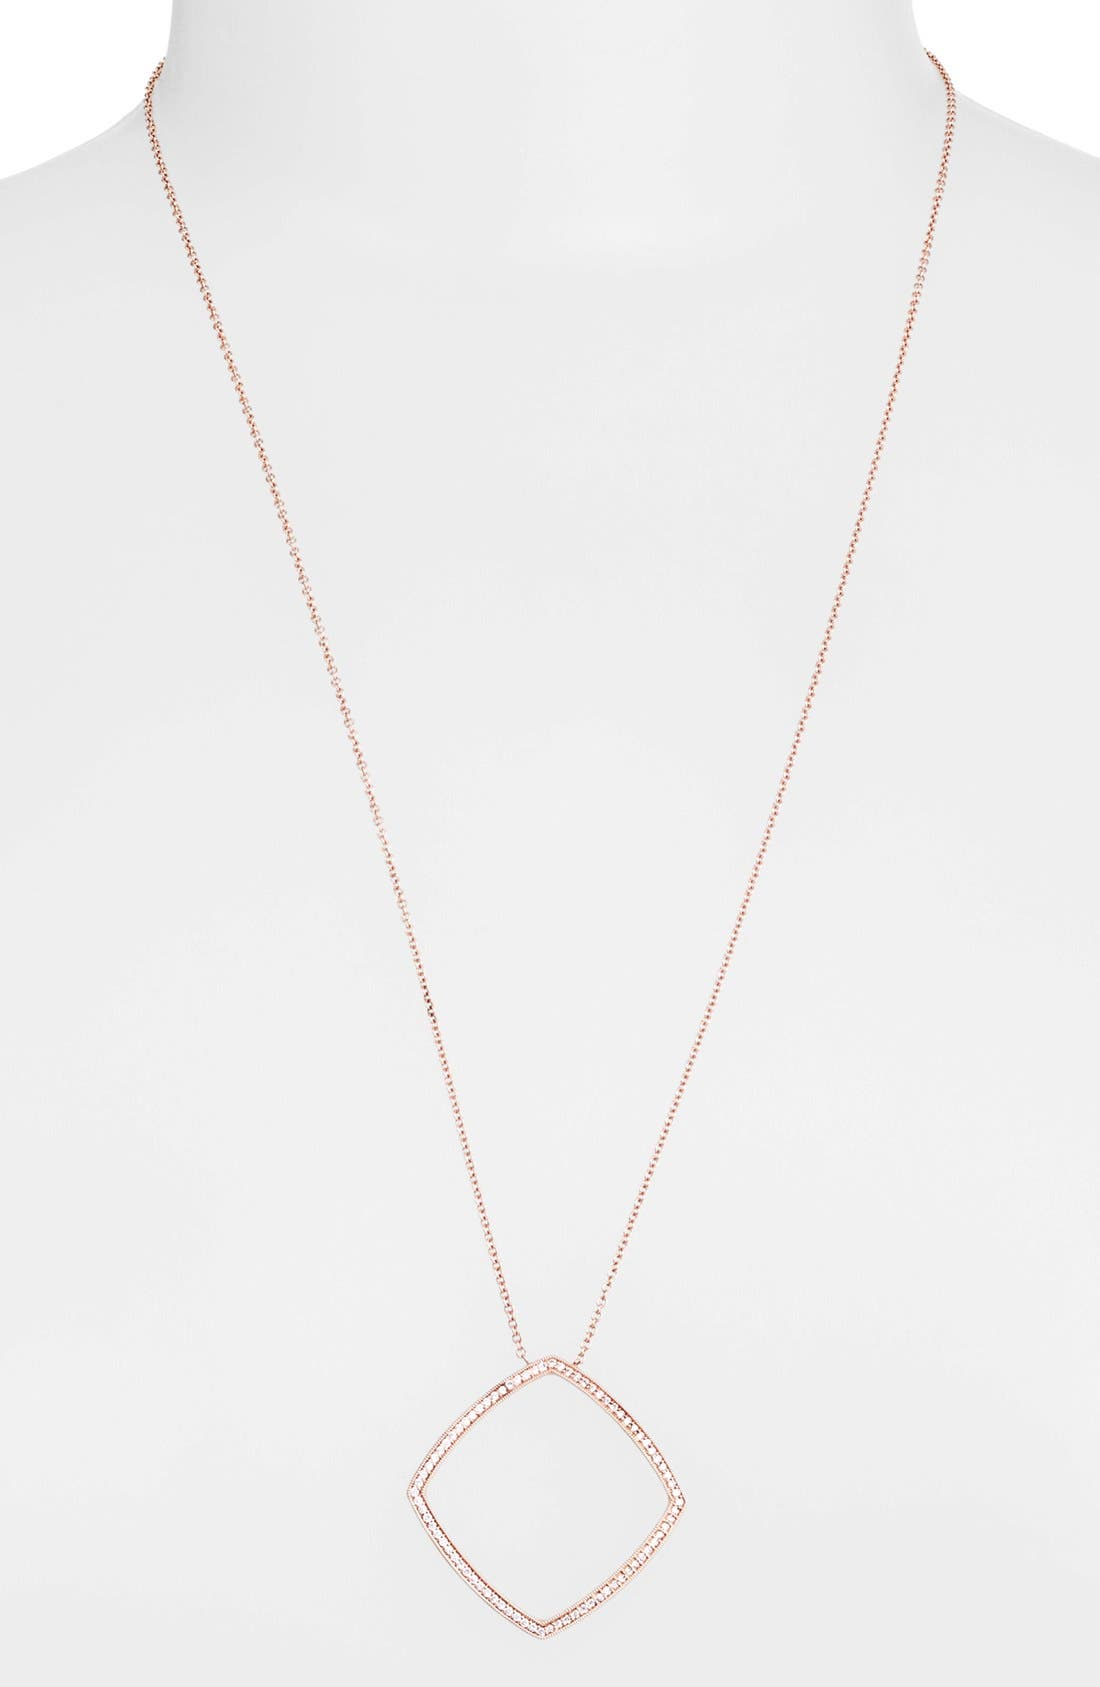 Alternate Image 1 Selected - Dana Rebecca Designs 'Alexa Jordyn' Diamond Pendant Necklace